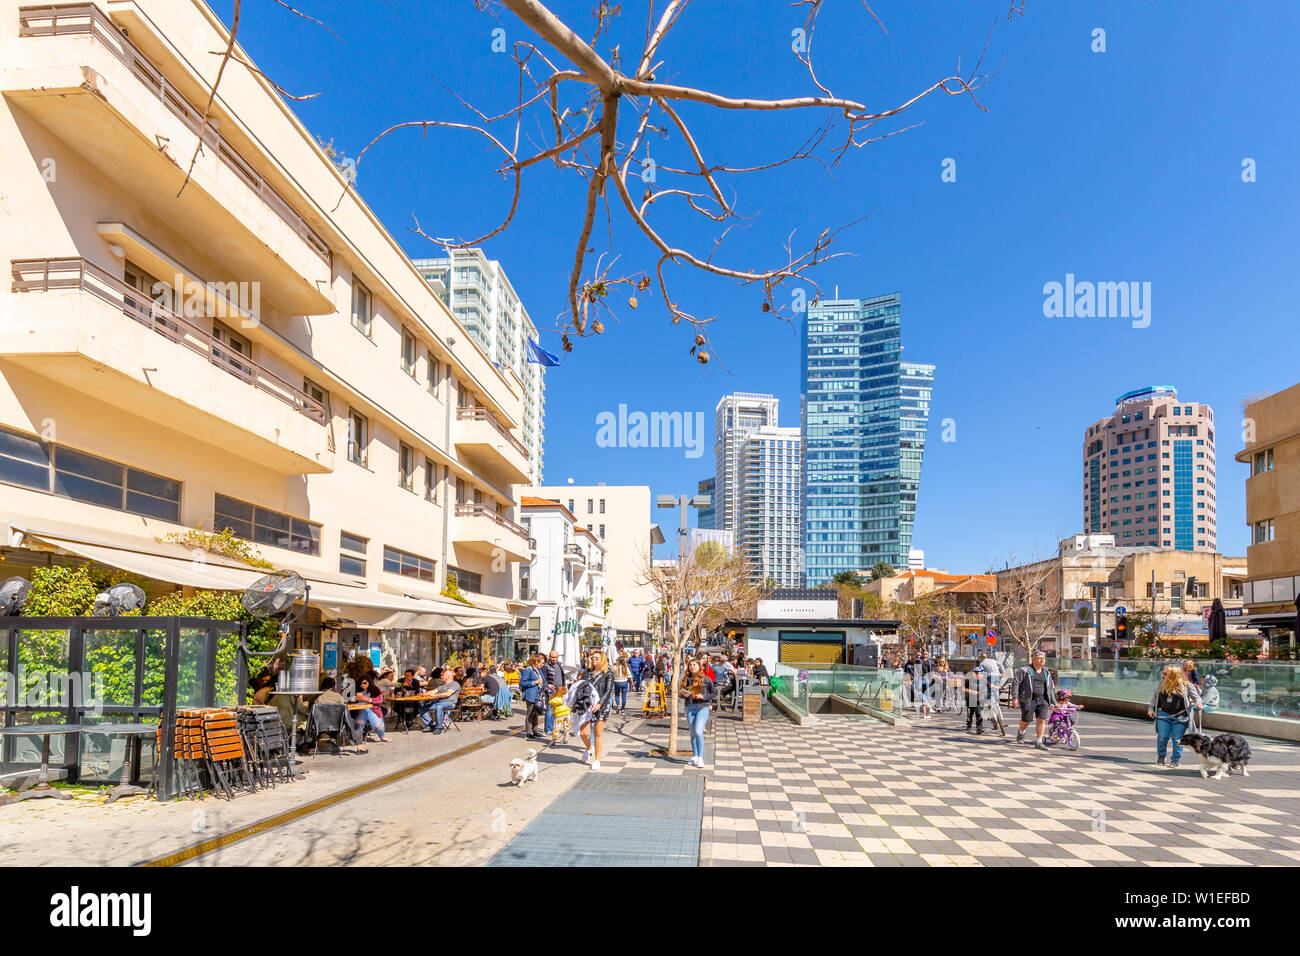 View of bar cafe and walkway on Rothschild Boulevard, Tel Aviv, Israel, Middle East - Stock Image